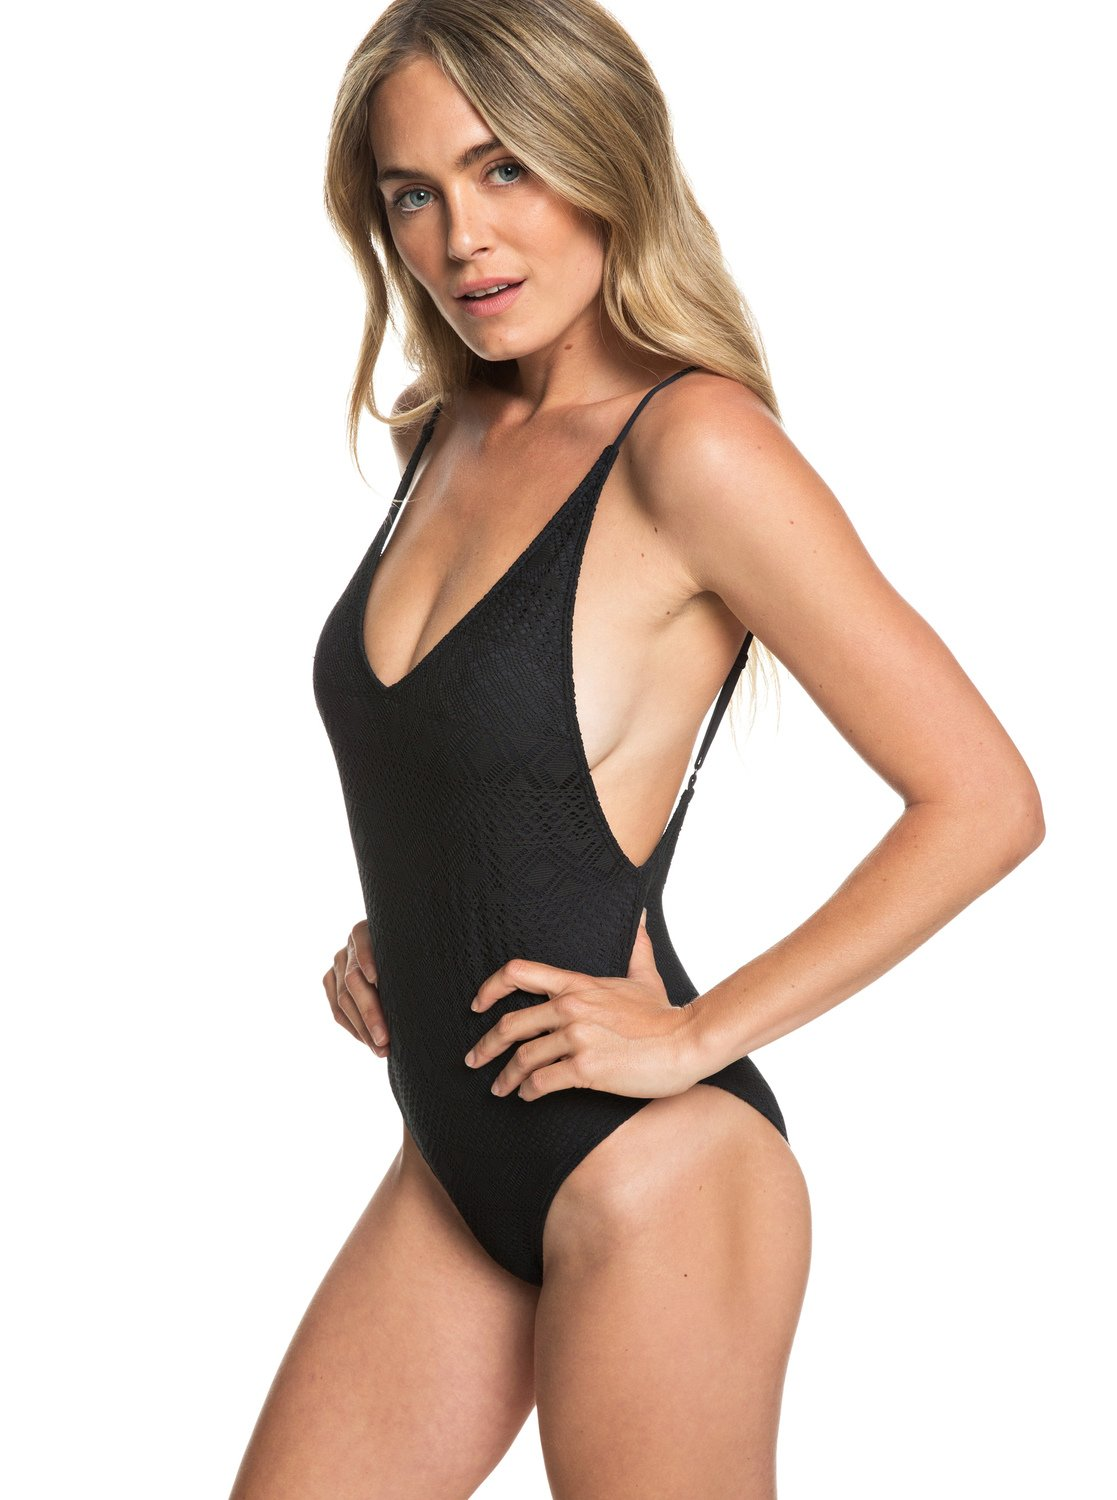 cc63754f0b 0 Garden Summers - One-Piece Swimsuit for Women Black ERJX103167 Roxy